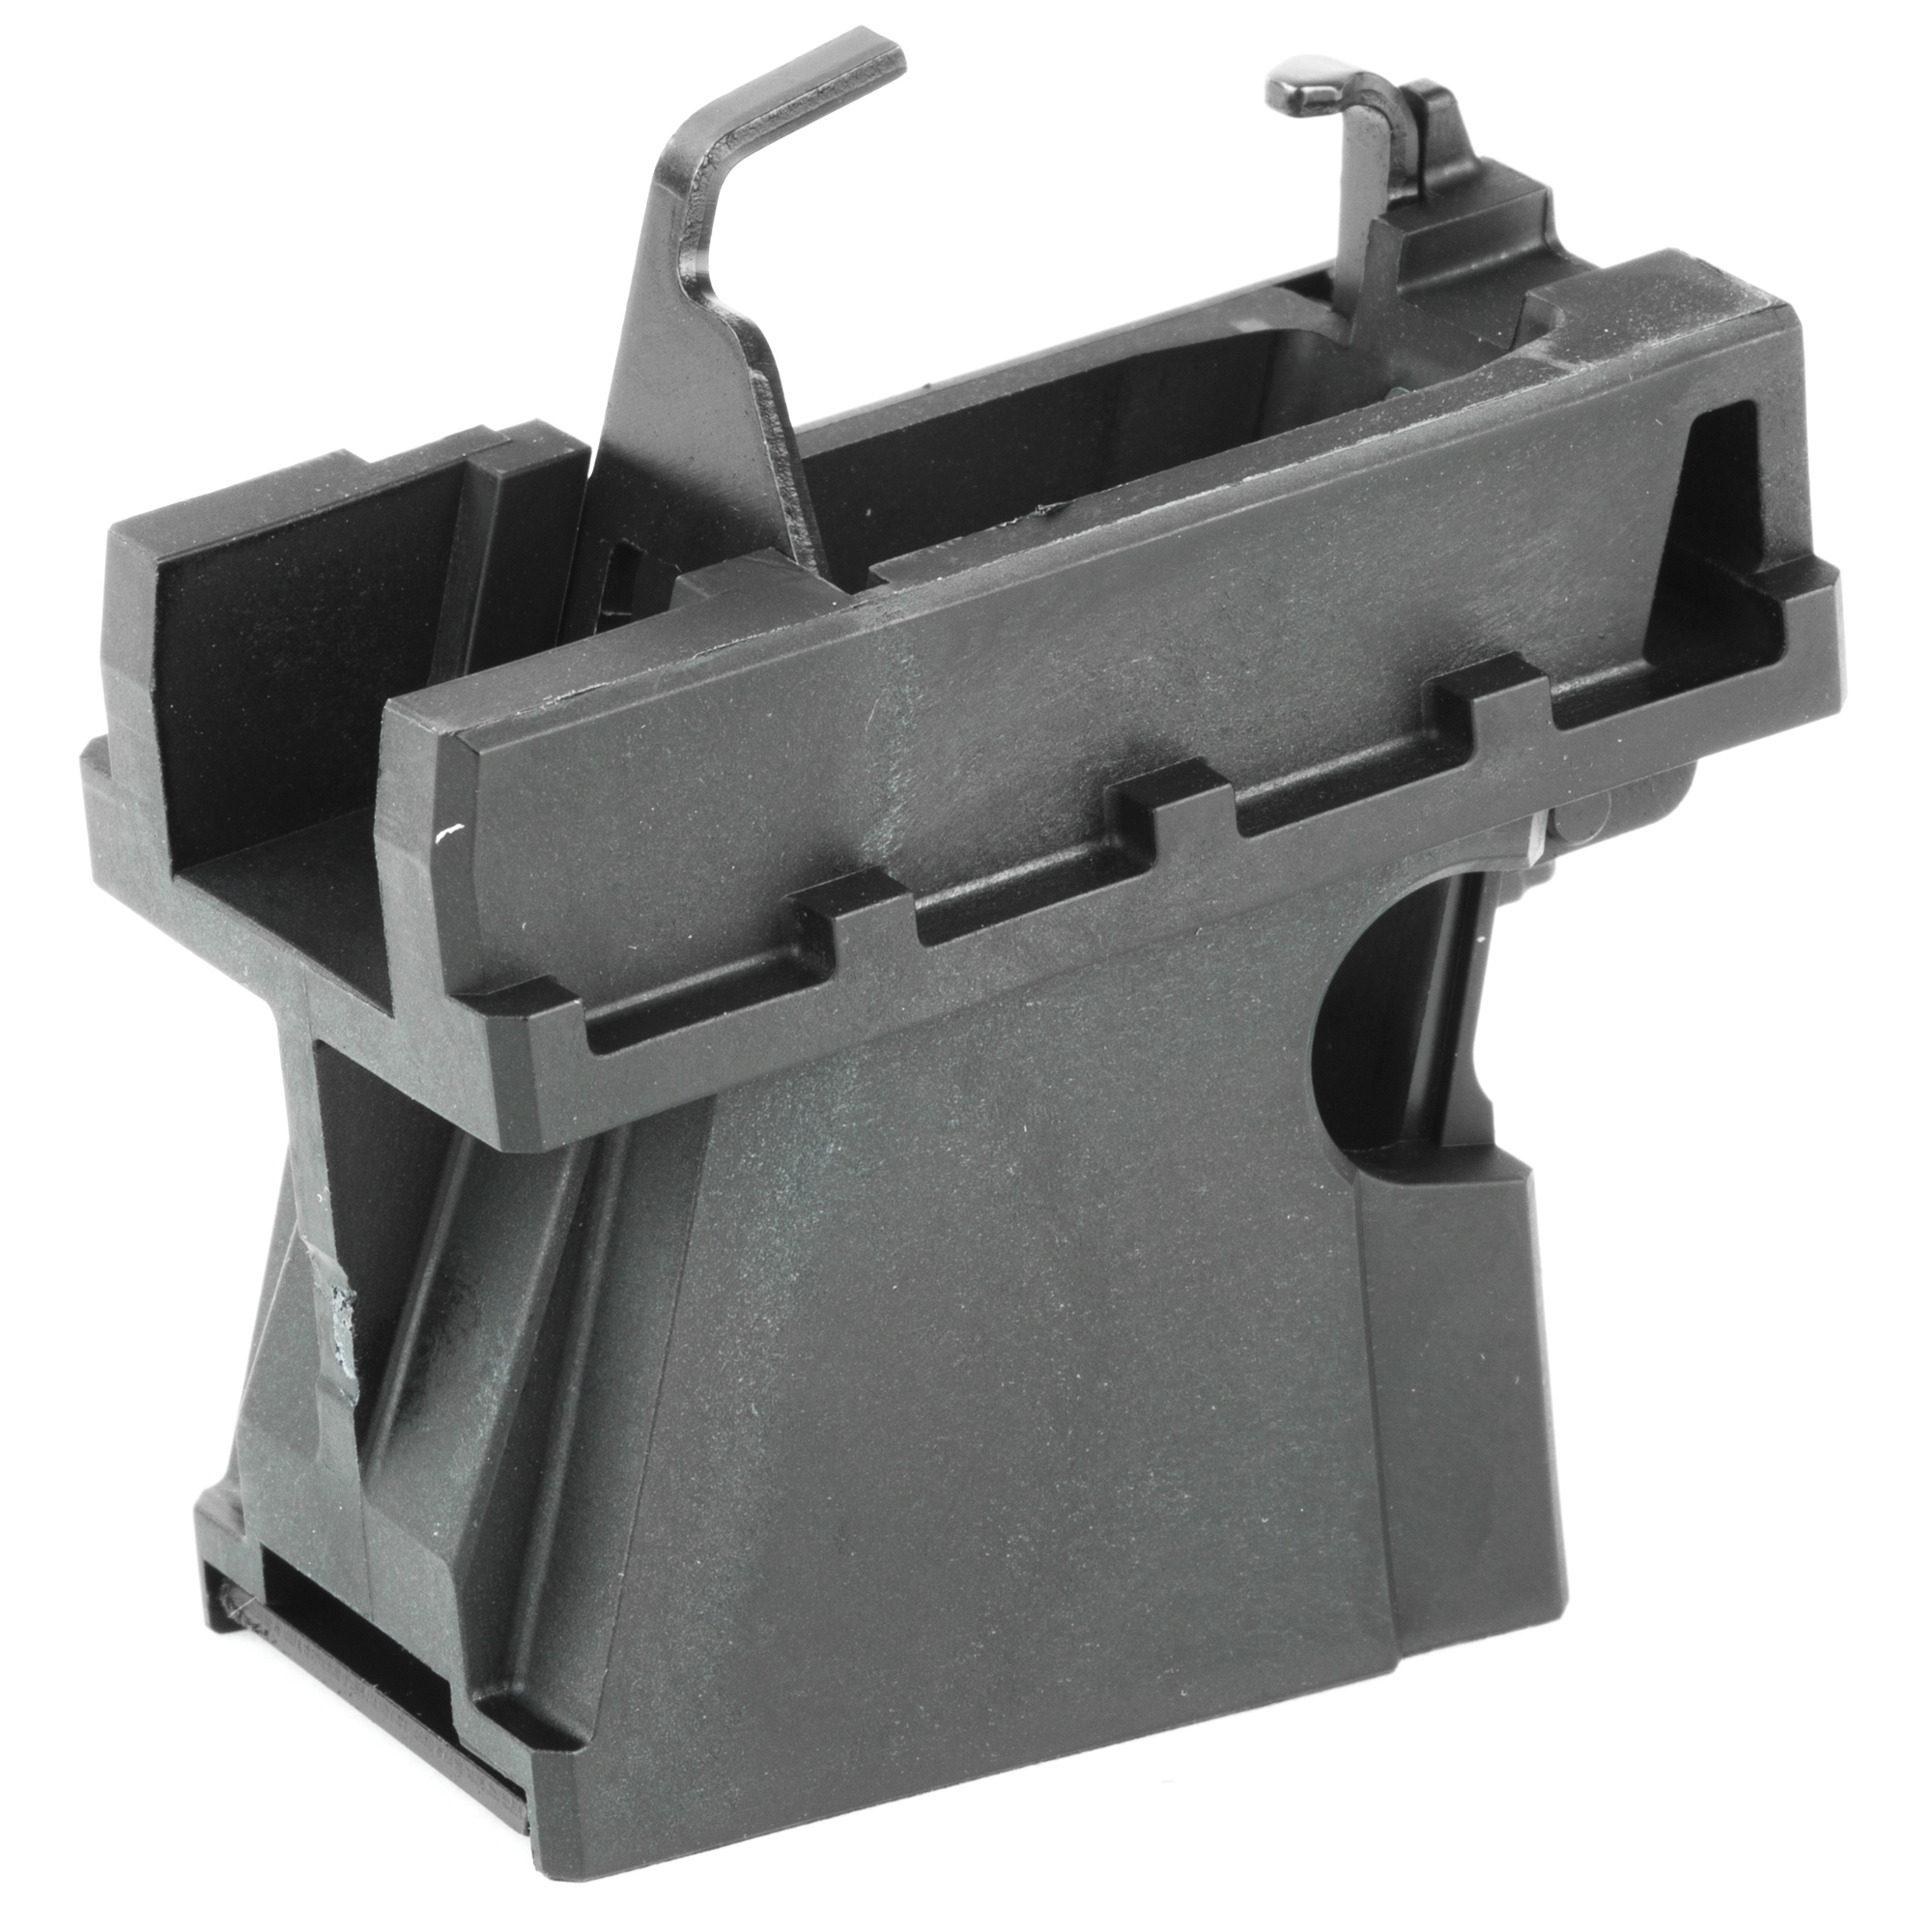 "This Magazine Well Insert Assembly is designed to work exclusively with the Ruger PC Carbine. It accepts all Ruger American Pistol 9mm magazines (90510"" 90514"" 90617 and 90618). The flush-fit design is made from rugged"" glass-filled polymer material for strength and durability."